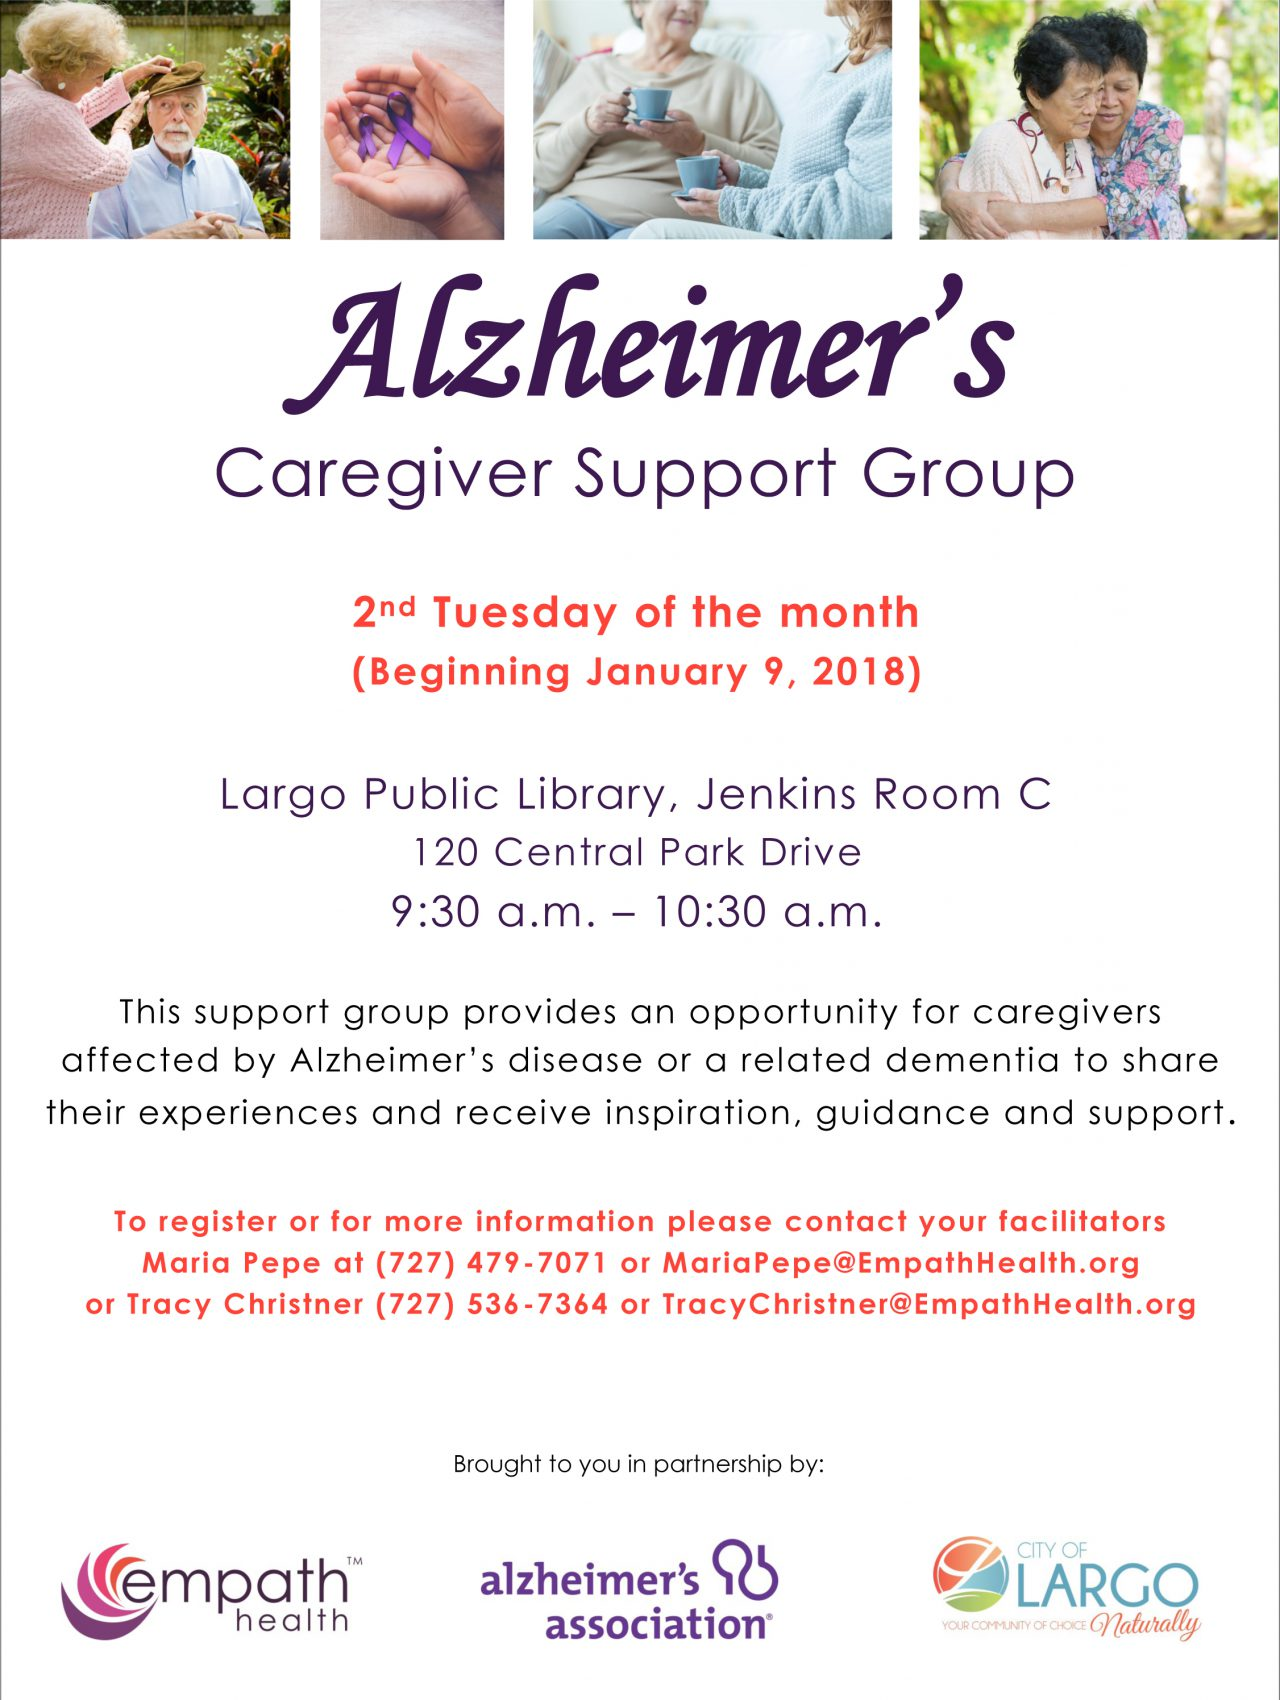 Alzheimer's Caregiver Support Group @ Largo Public Library, Jenkins Room C